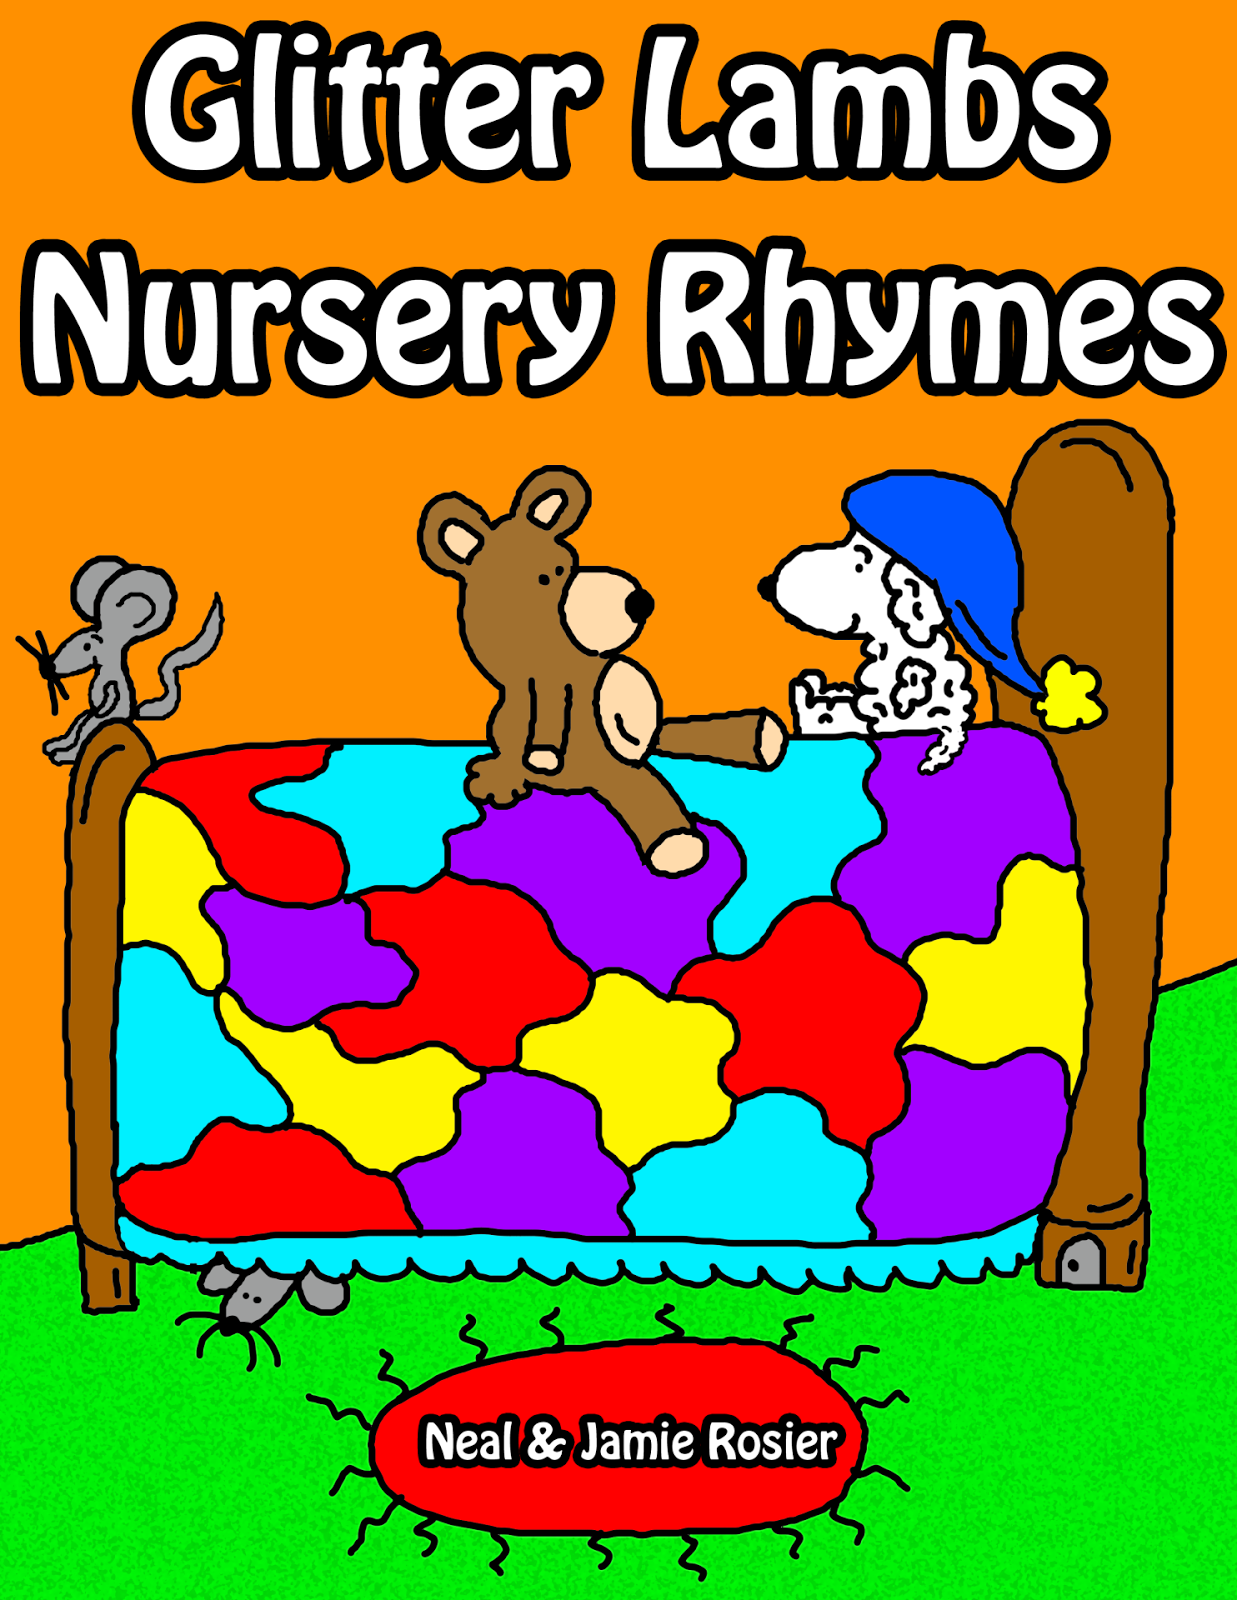 Glitter Lambs Nursery Rhymes Book